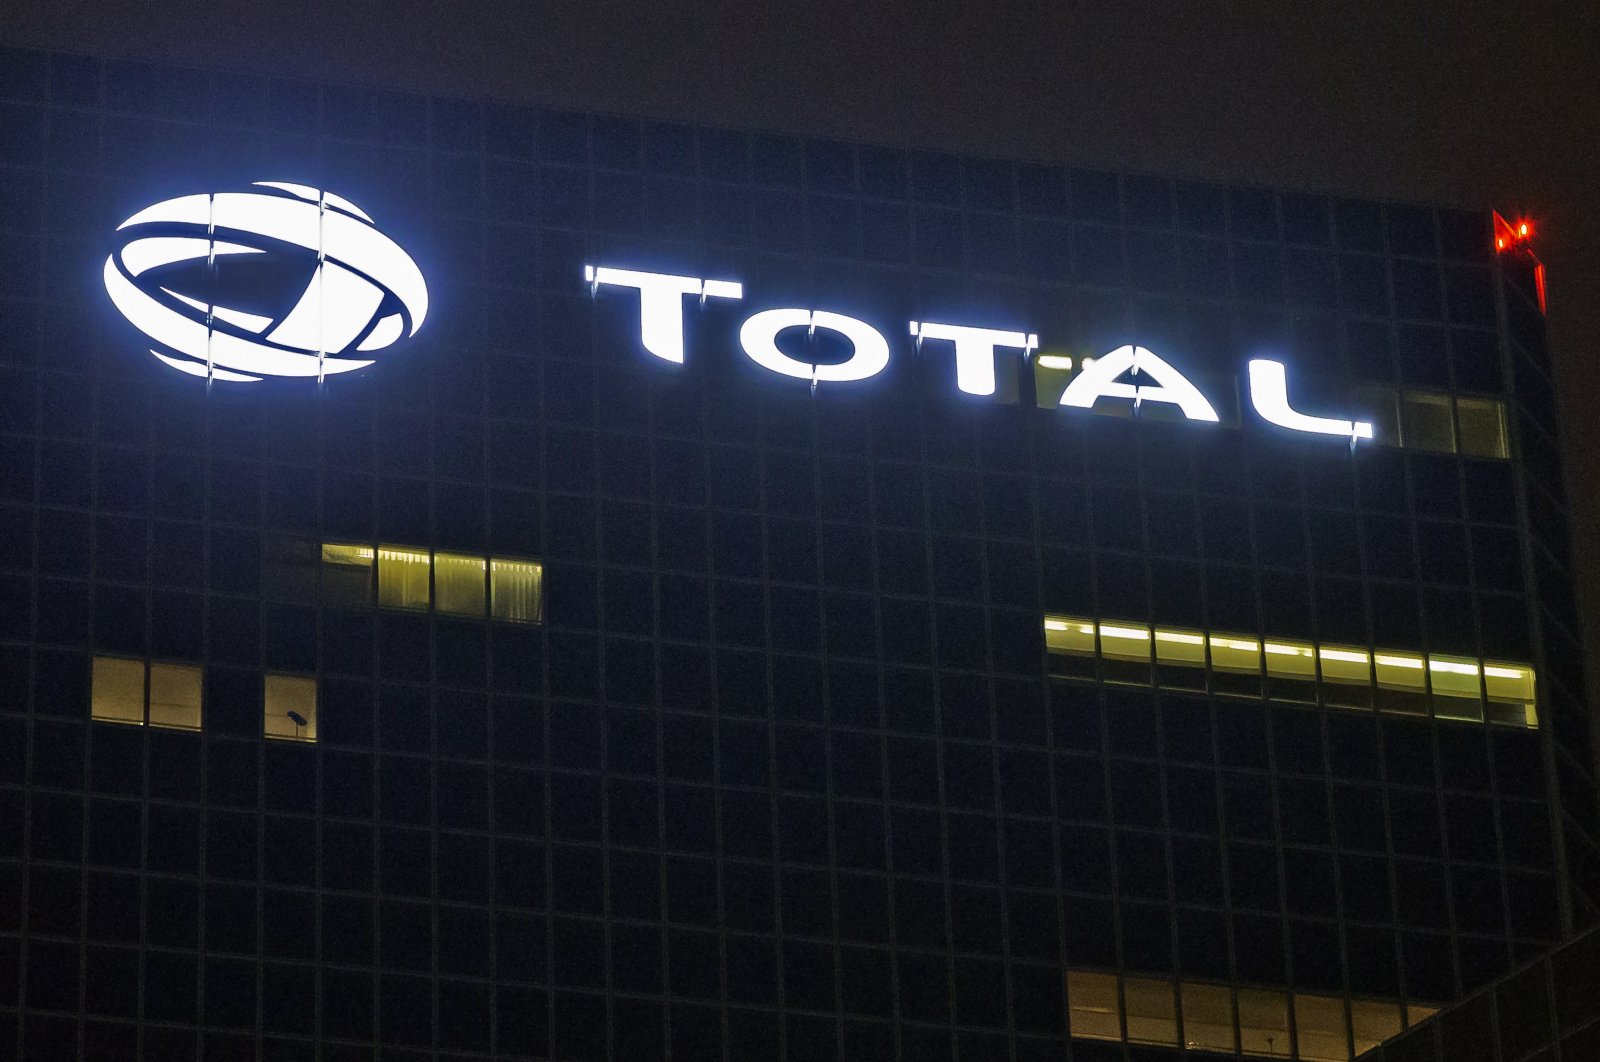 The logo of French oil giant Total SA is pictured at company headquarters in La Defense business district, outside Paris, France, Oct. 12, 2016. (AP Photo)